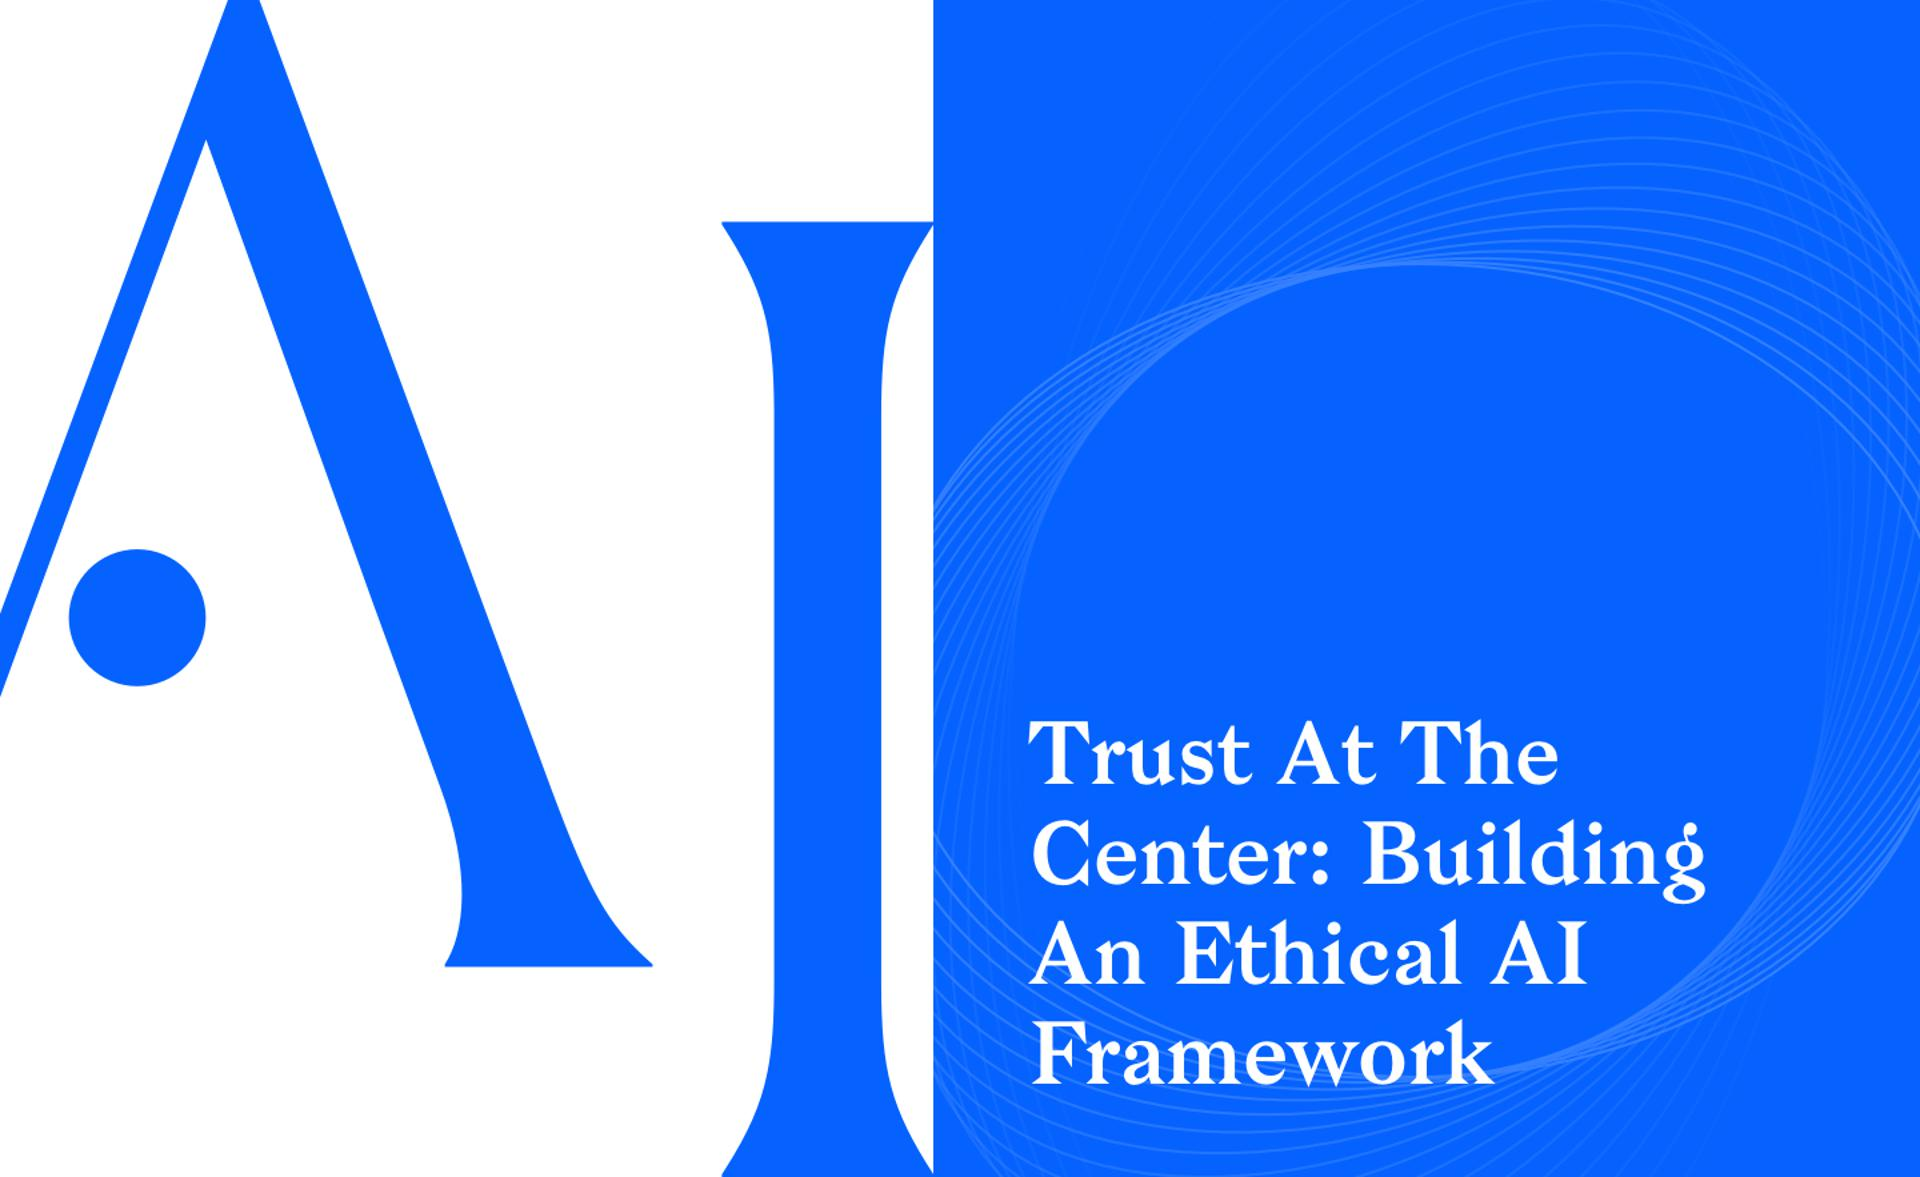 Trust At The Center: Building An Ethical AI Framework